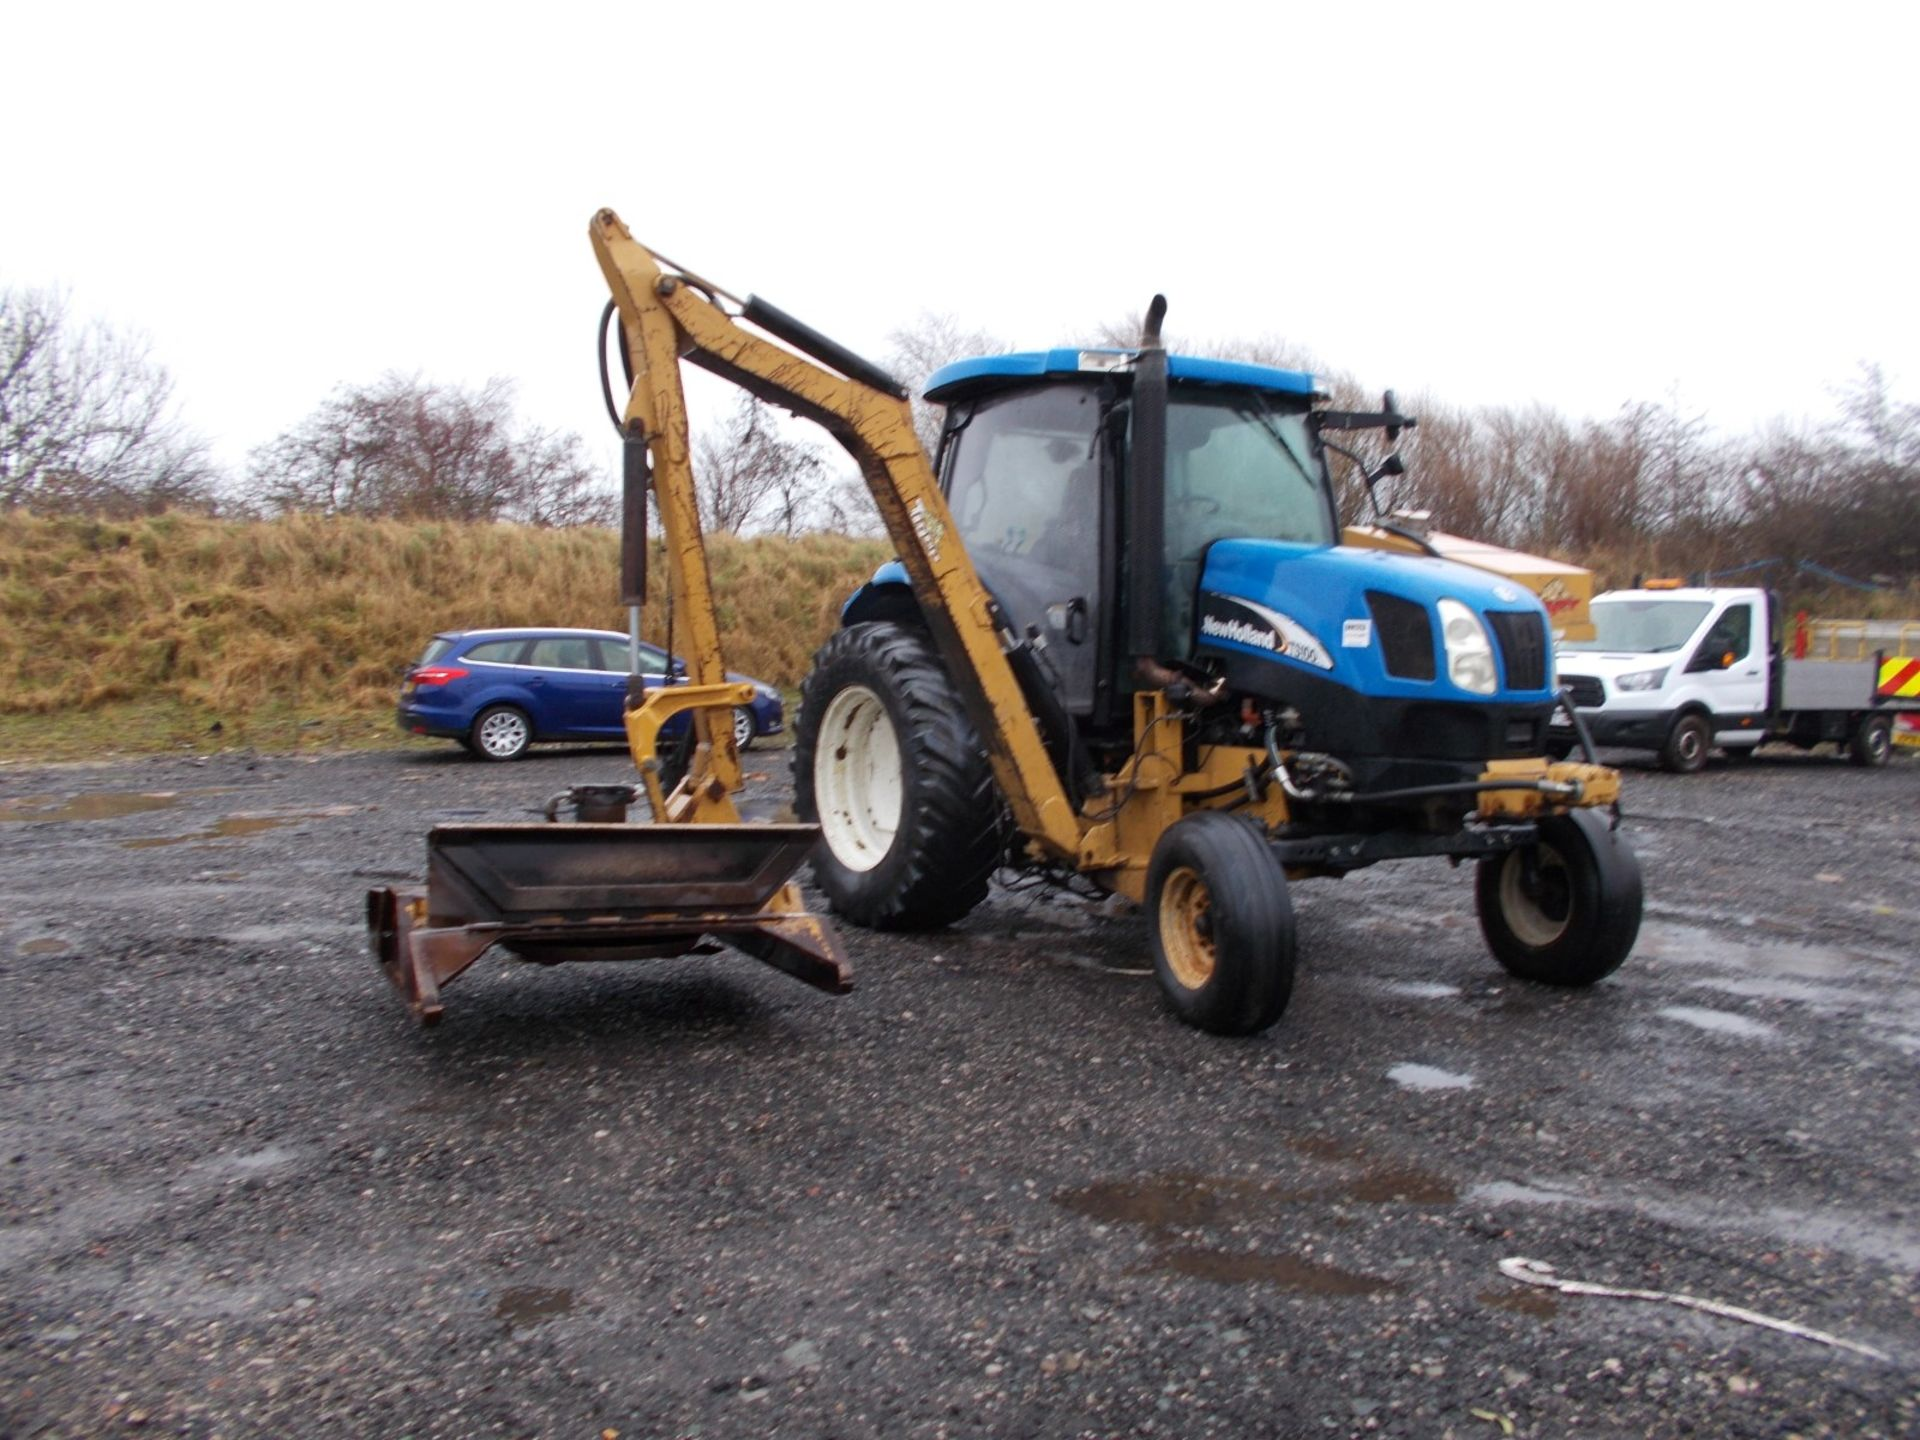 2003 NEW HOLLAND TS100A TRACTOR WITH MOWER ATTACHMENT, 4.5 LITRE 100HP TURBO DIESEL *PLUS VAT* - Image 11 of 24